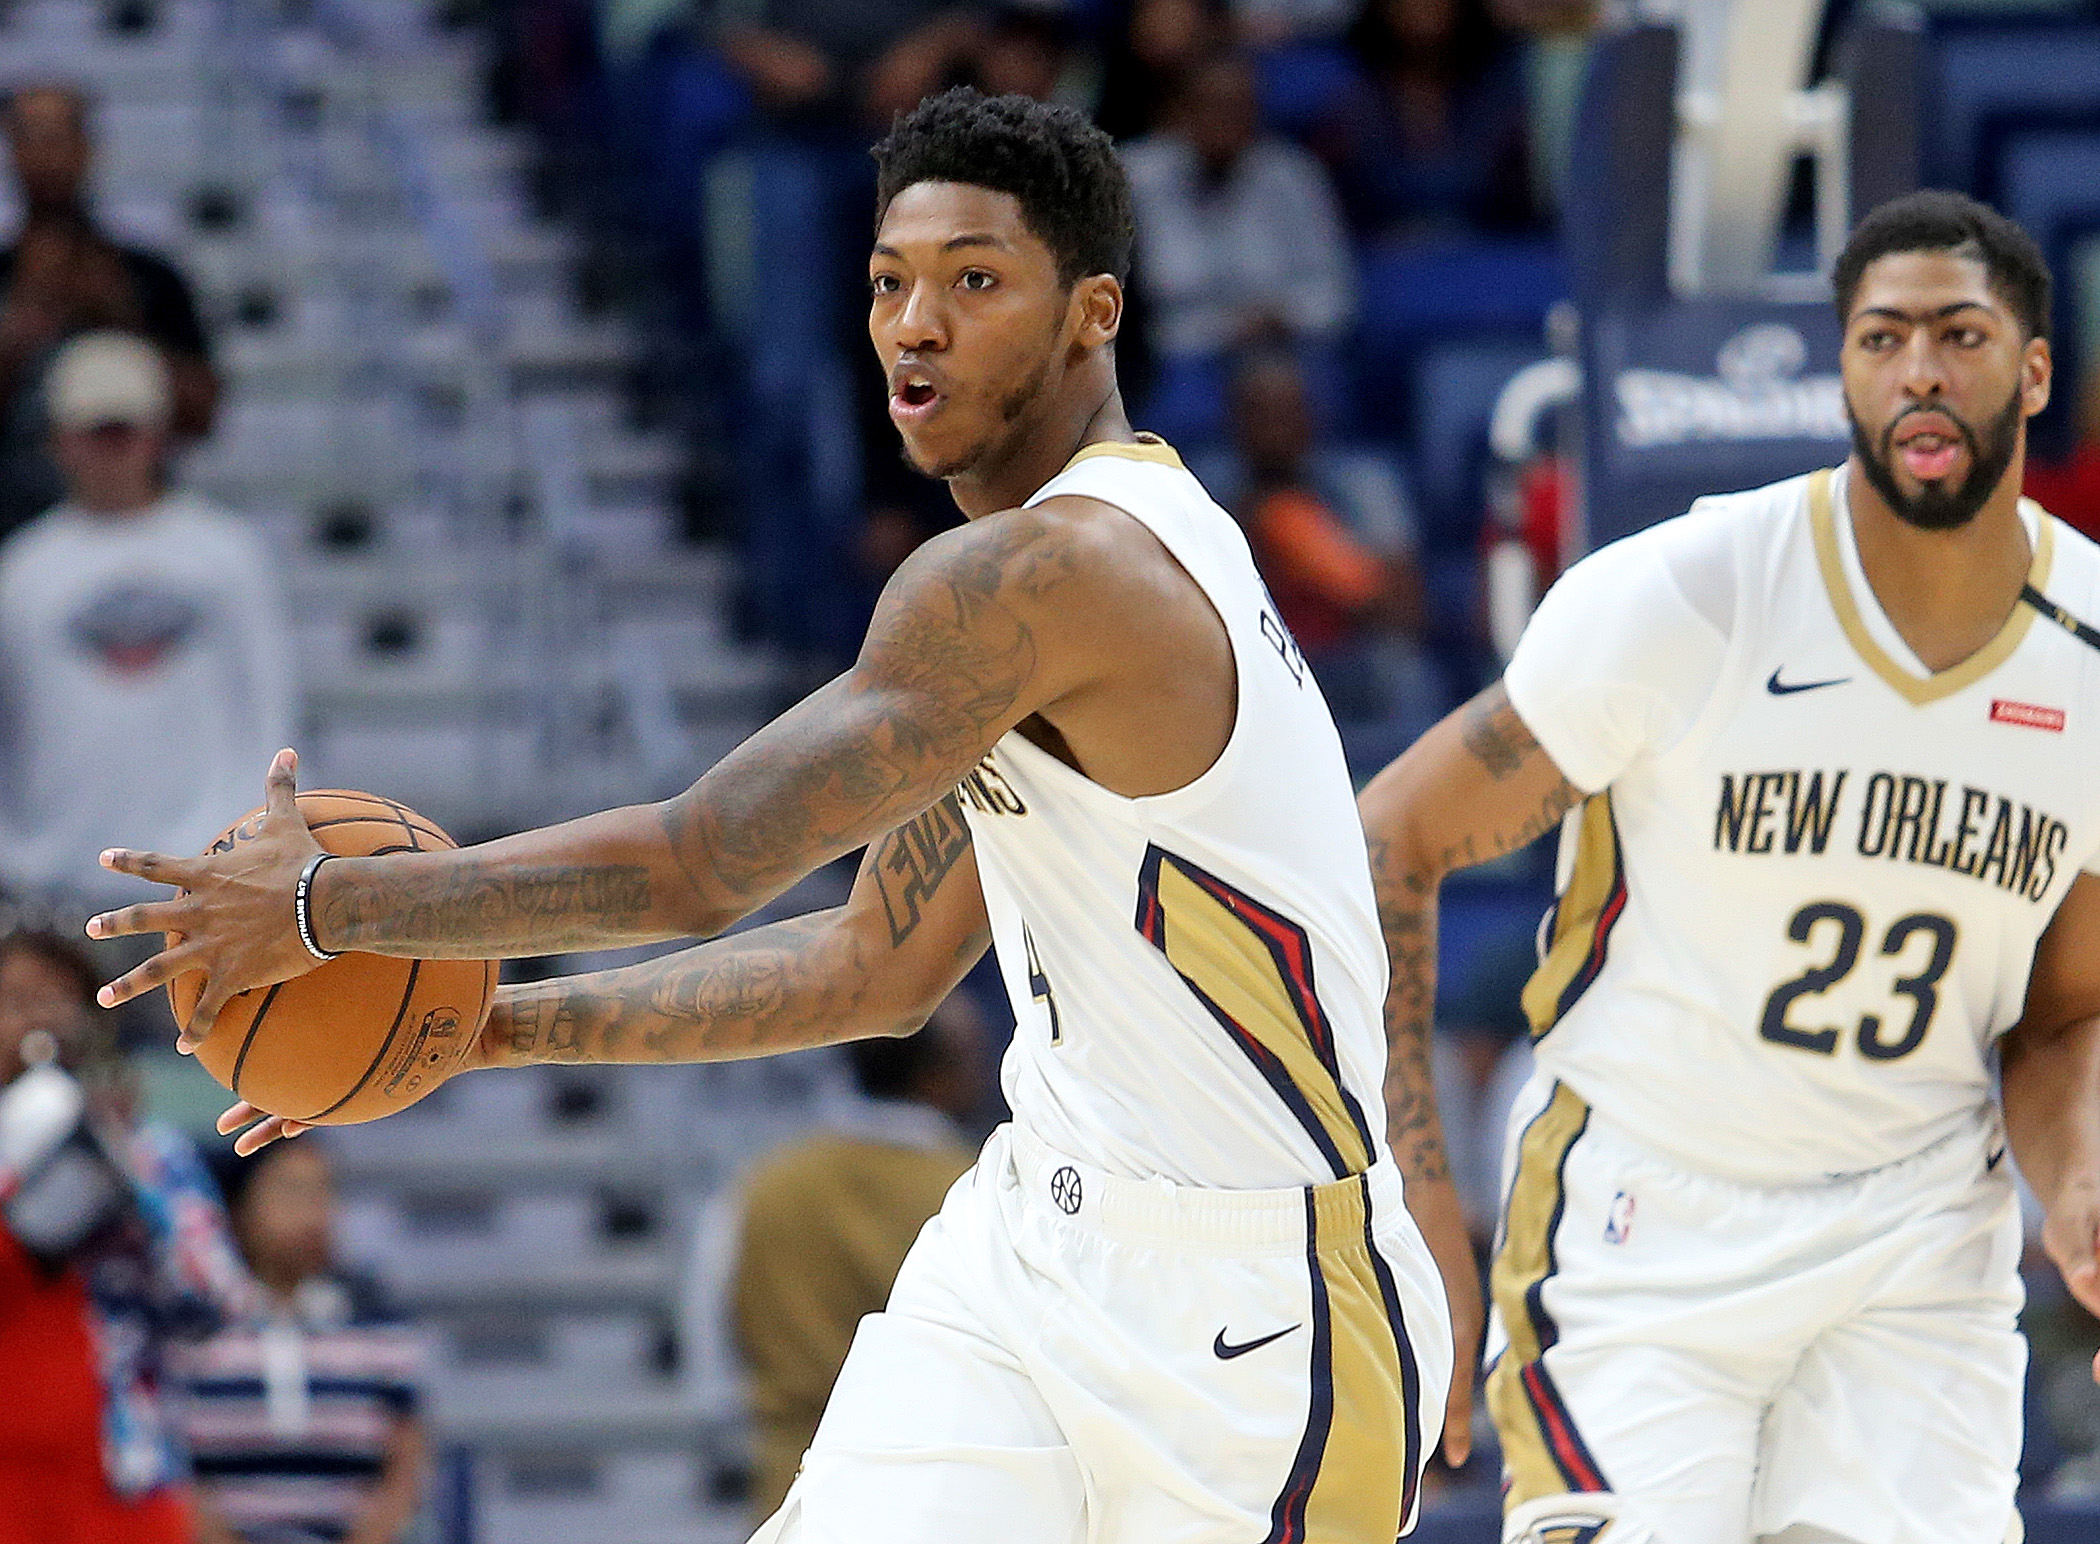 New Orleans Pelicans guard Elfrid Payton (4) drives up the court during the preseason game between the Toronto Raptors and New Orleans Pelicans at the Smoothie King Center on Thursday, October 11, 2018. (Photo by Michael DeMocker, NOLA.com | The Times-Picayune)